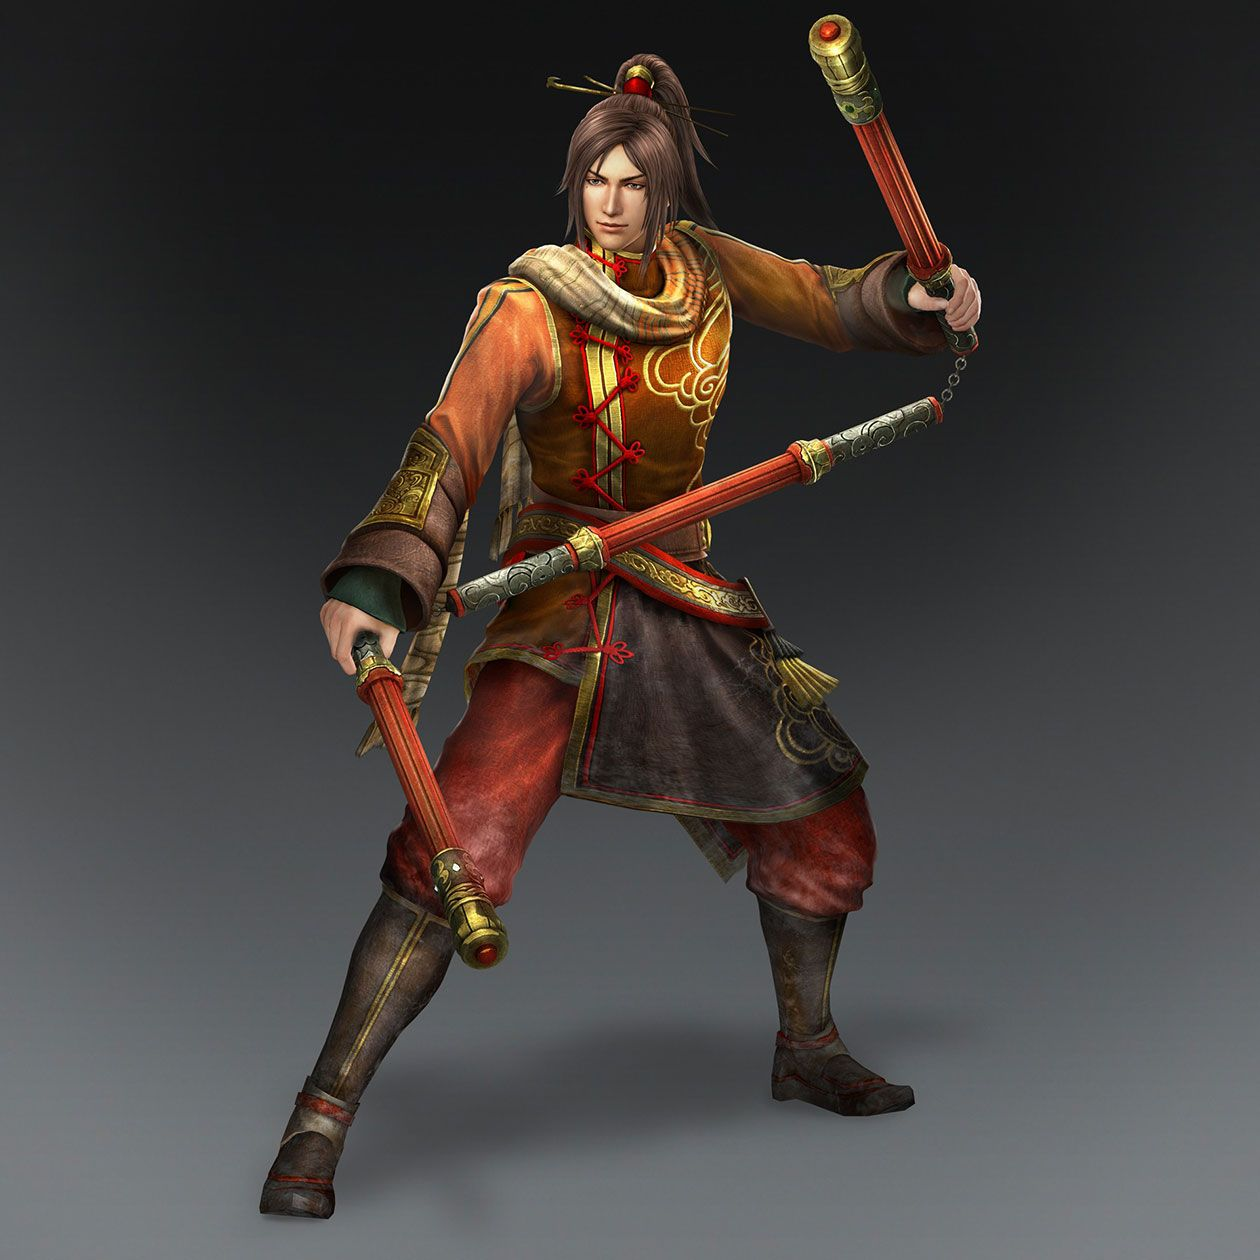 Warriors Orochi 3 Ultimate Weapons Jerz: Ling Tong & Weapon (Wu Forces)